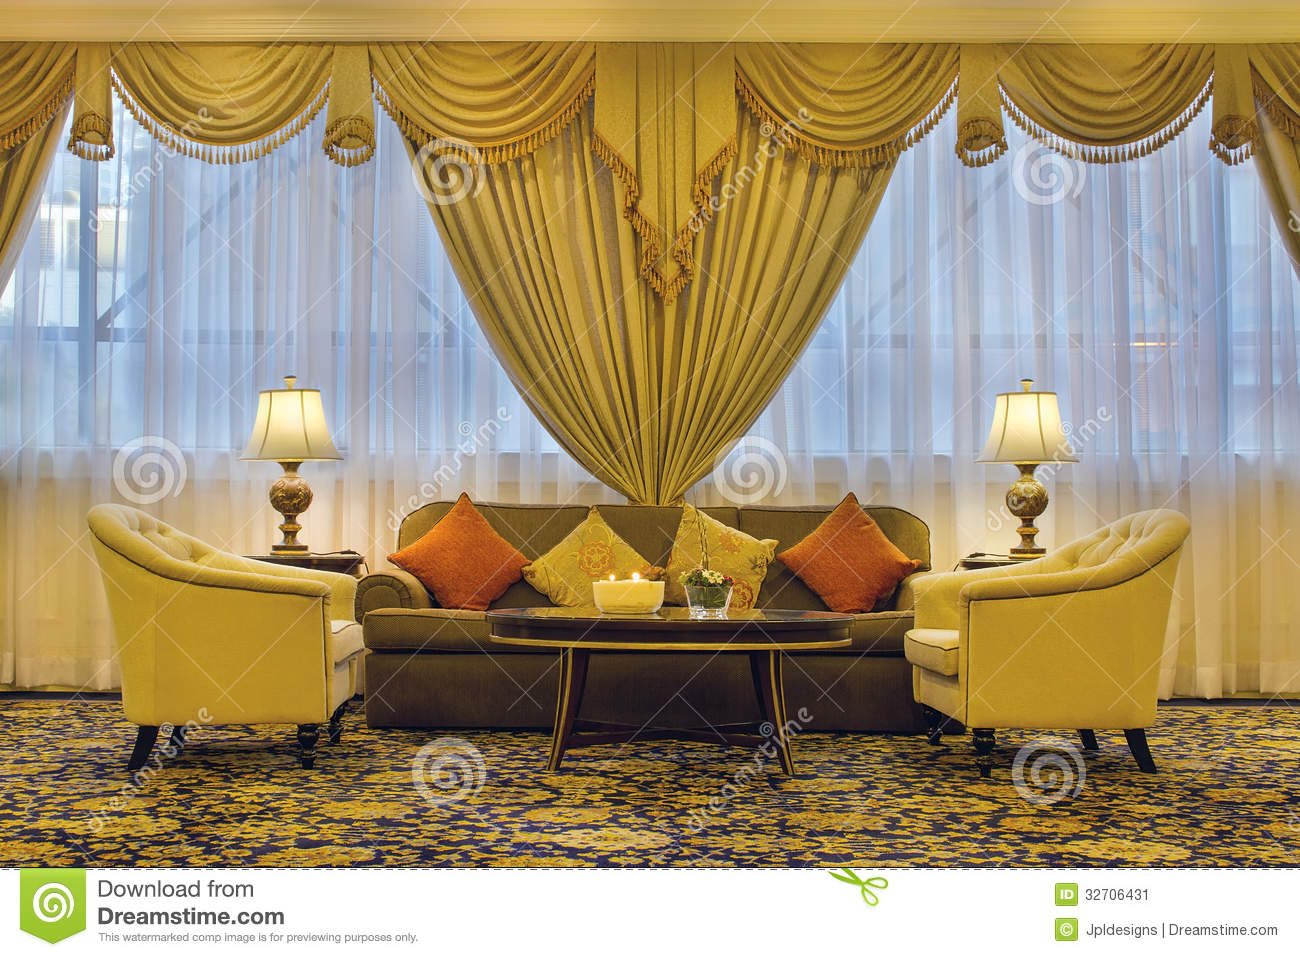 Living Room With Ornate Curtains And Furniture Stock Image